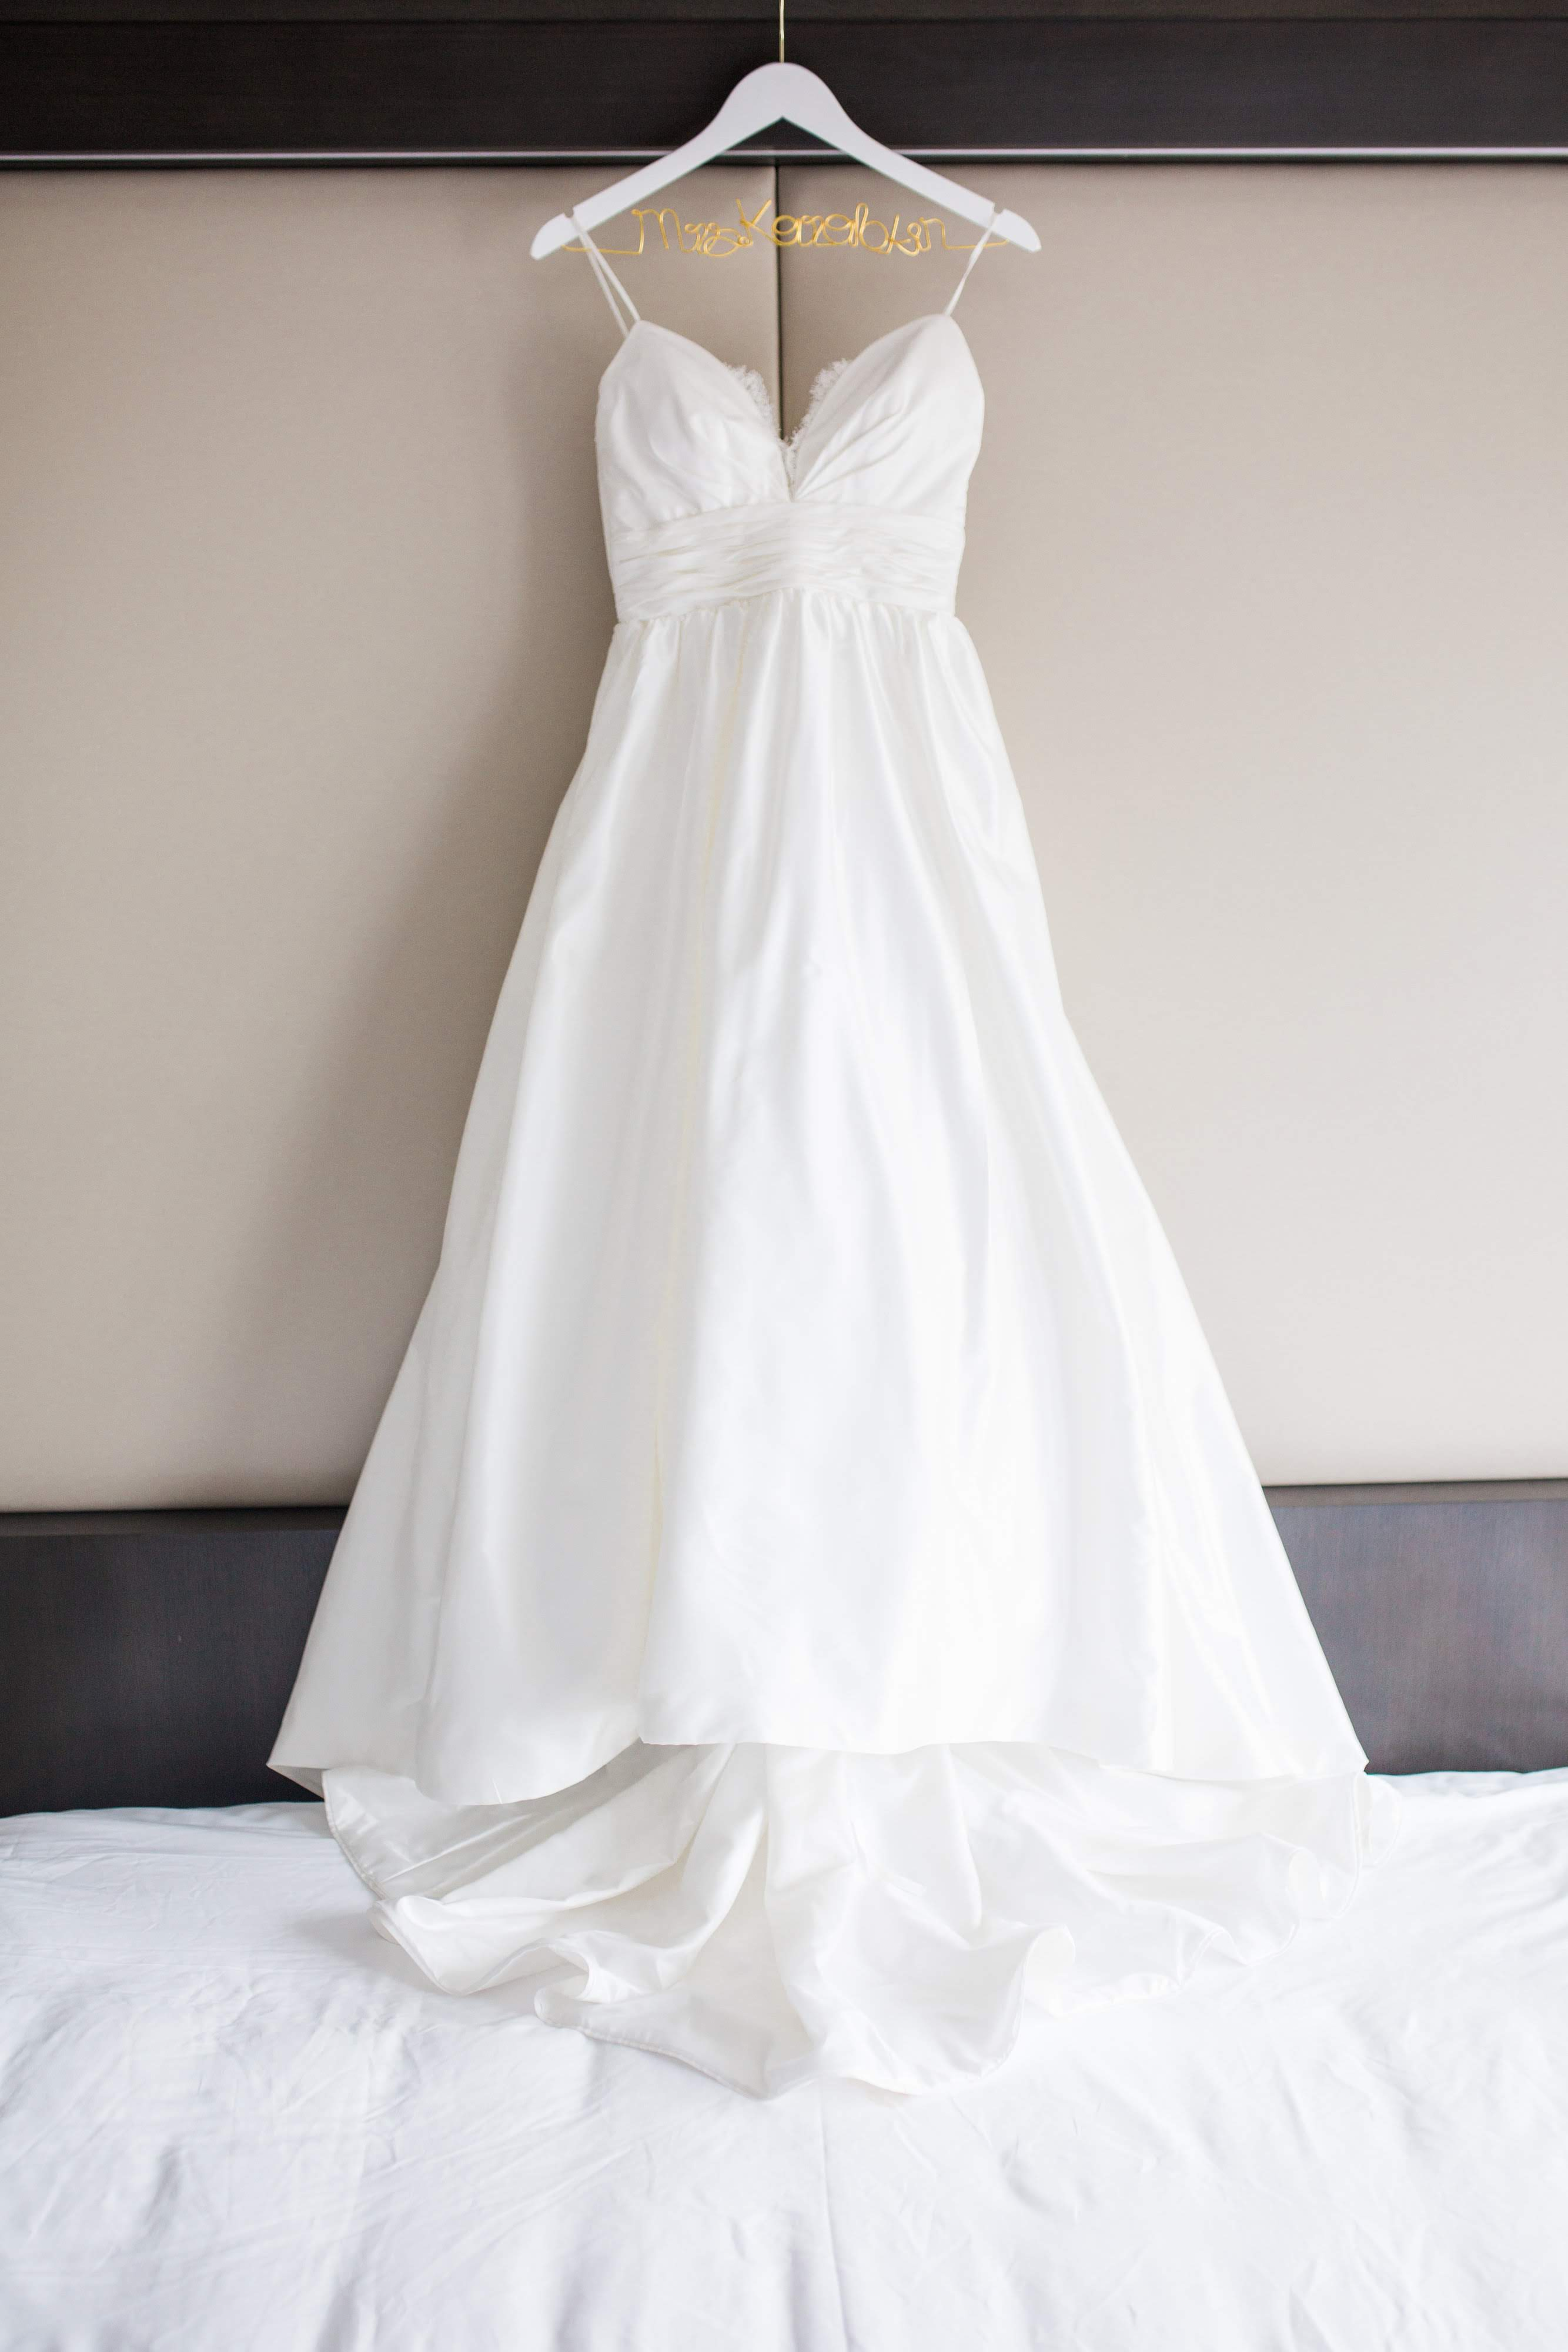 Gown: Modern Trousseau (Image: Birds of a Feather Photography /{ }http://birdsofafeatherphotos.com){ }